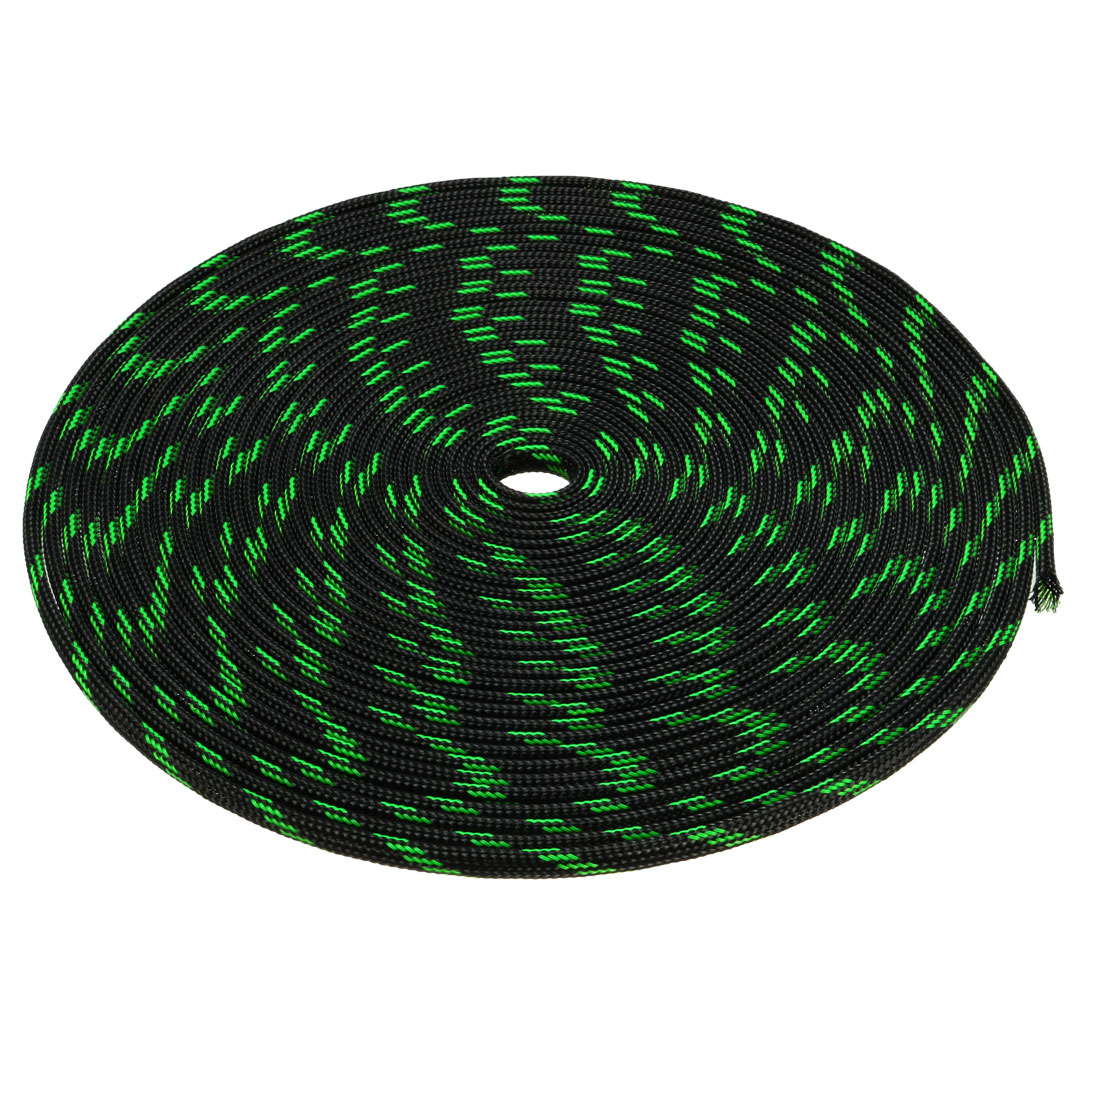 PET Braided Sleeving 32.8 Feet 10m Expandable Cable Wrap 6mm Diameter Wire Sheath Black Green